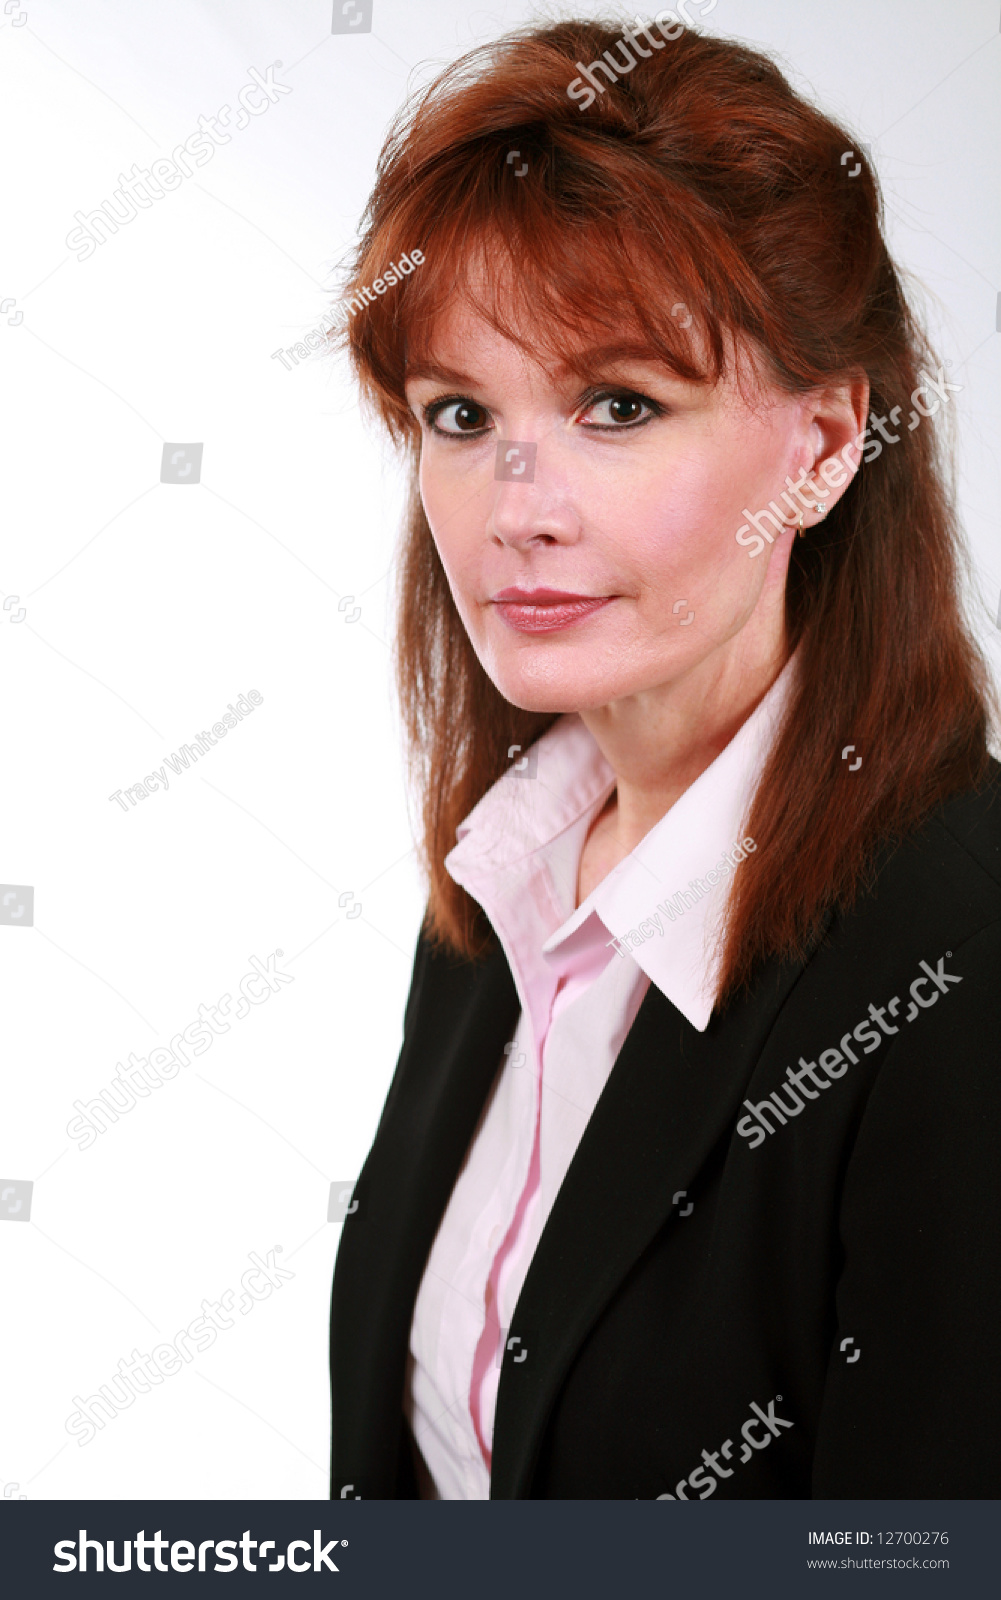 beautiful mature business woman red hair stock photo (100% legal